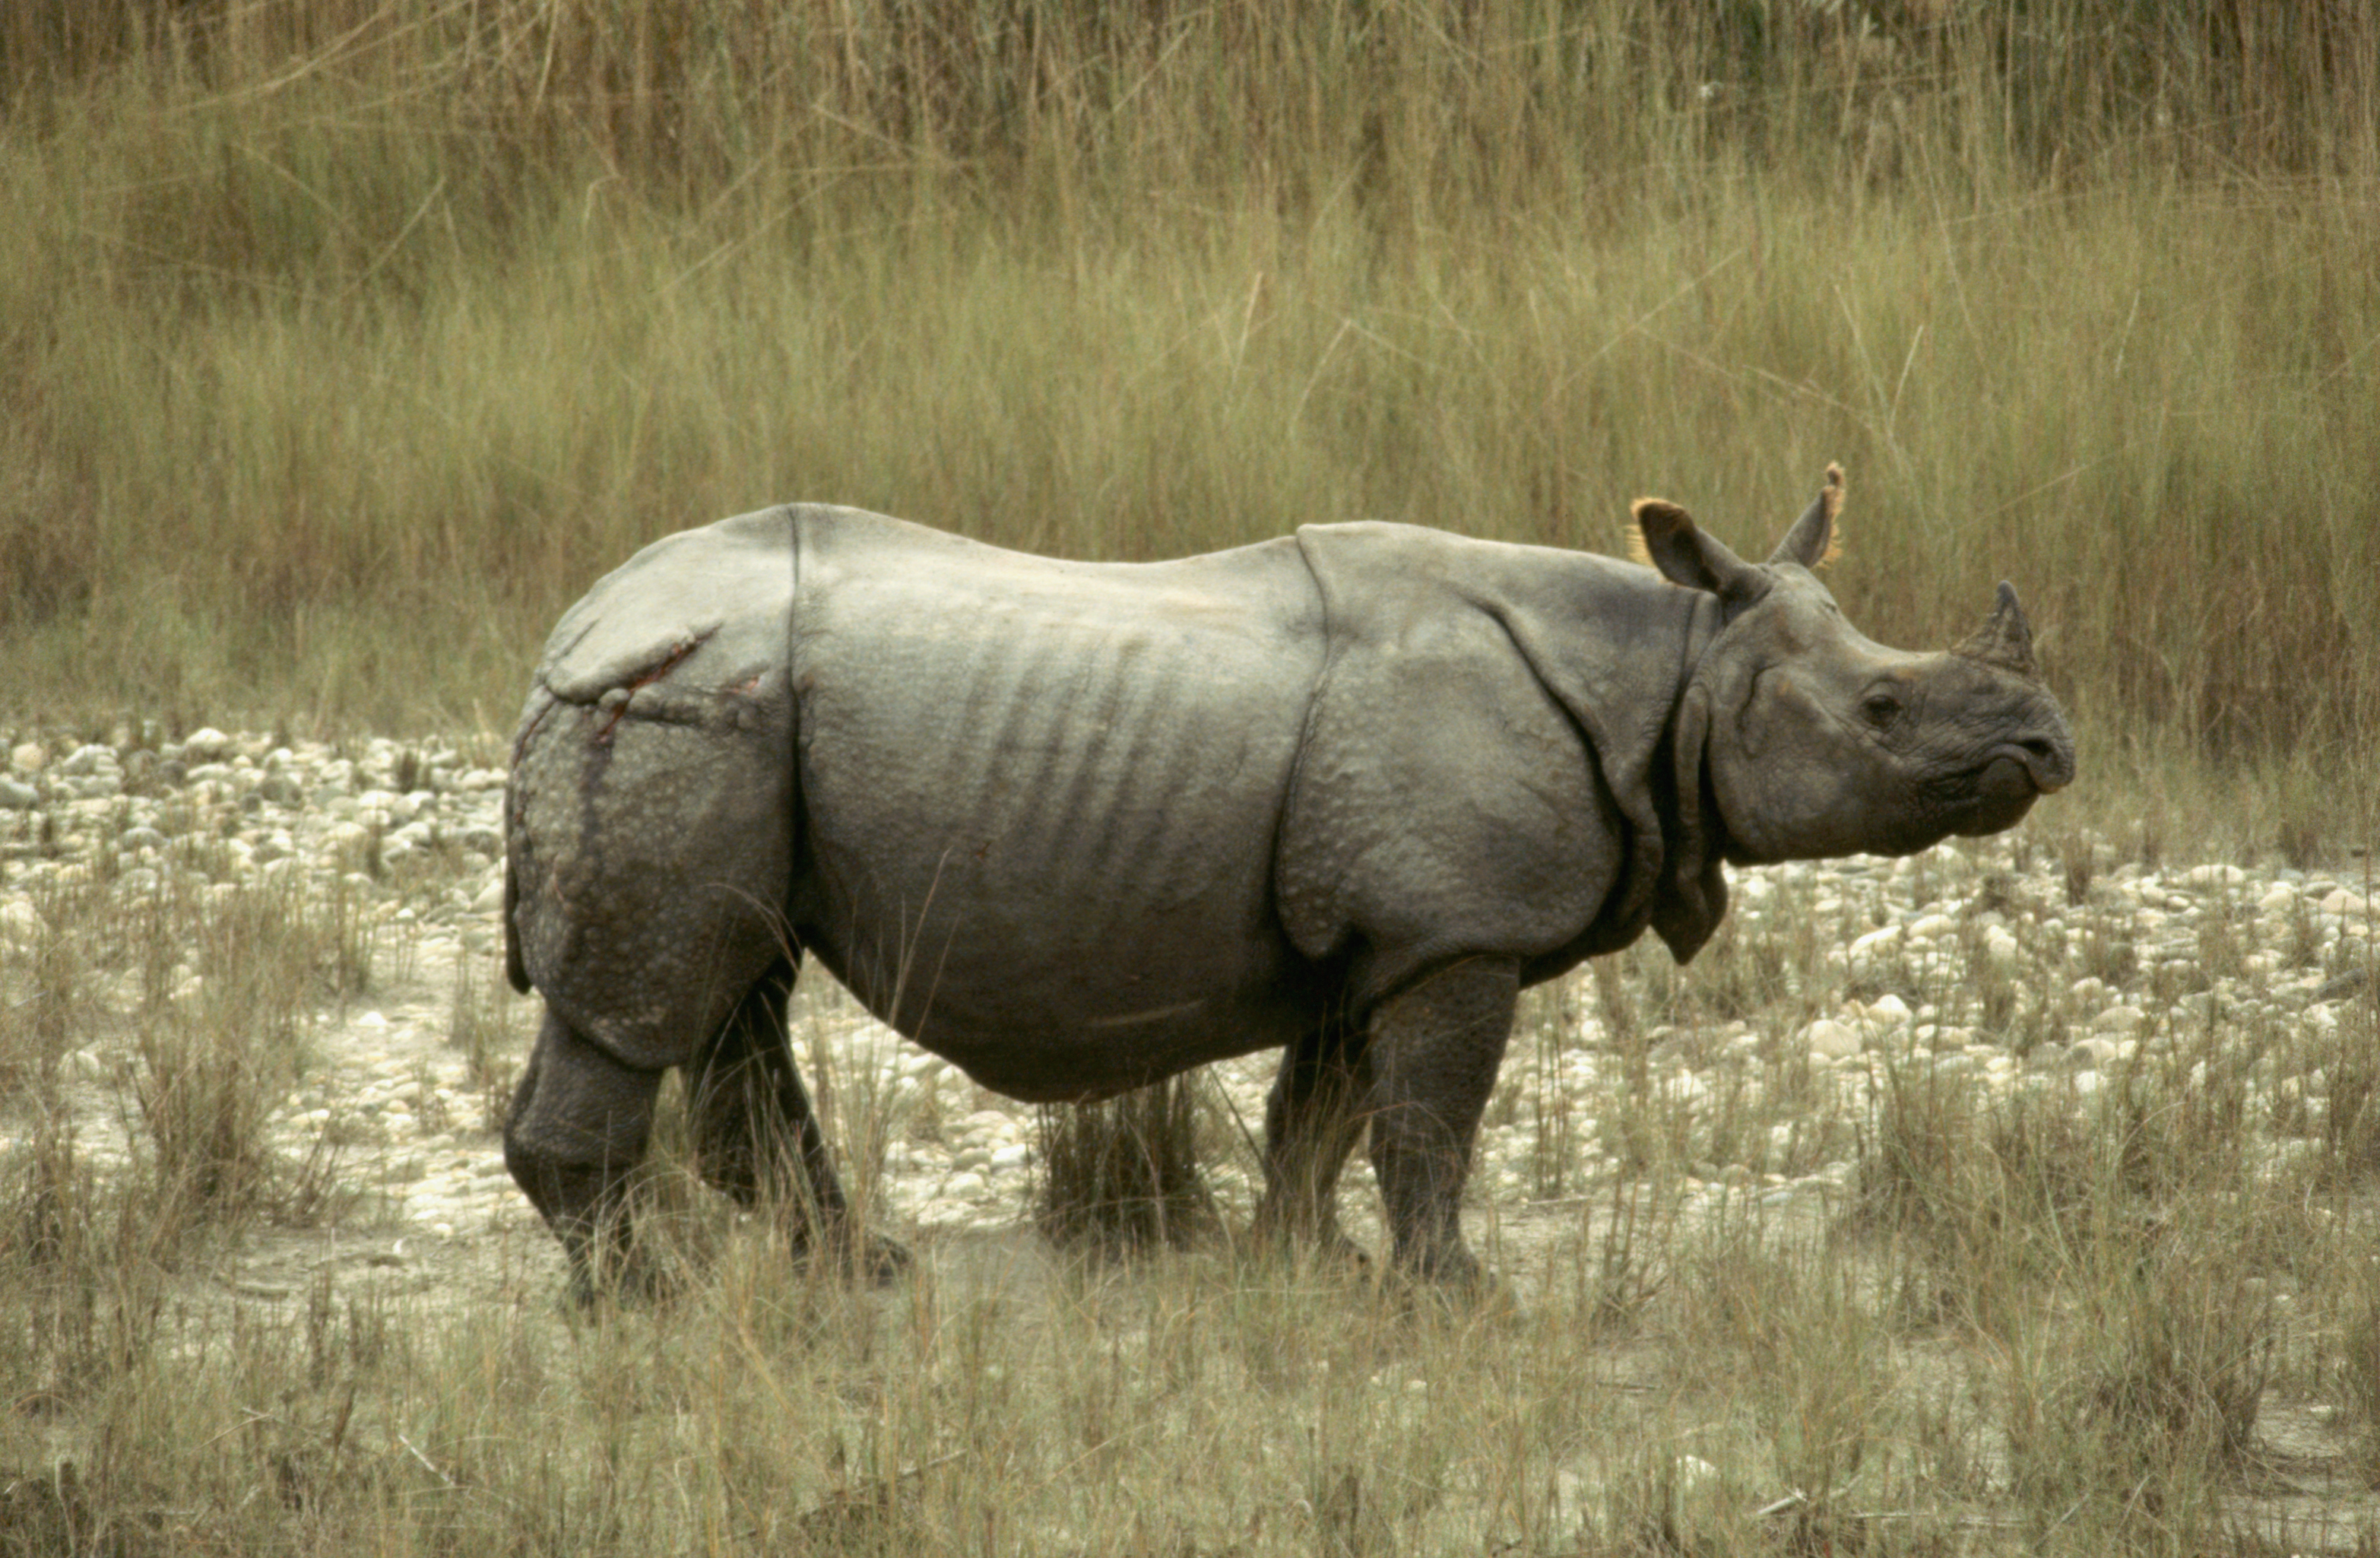 Apologise, asian one horned rhino charming message